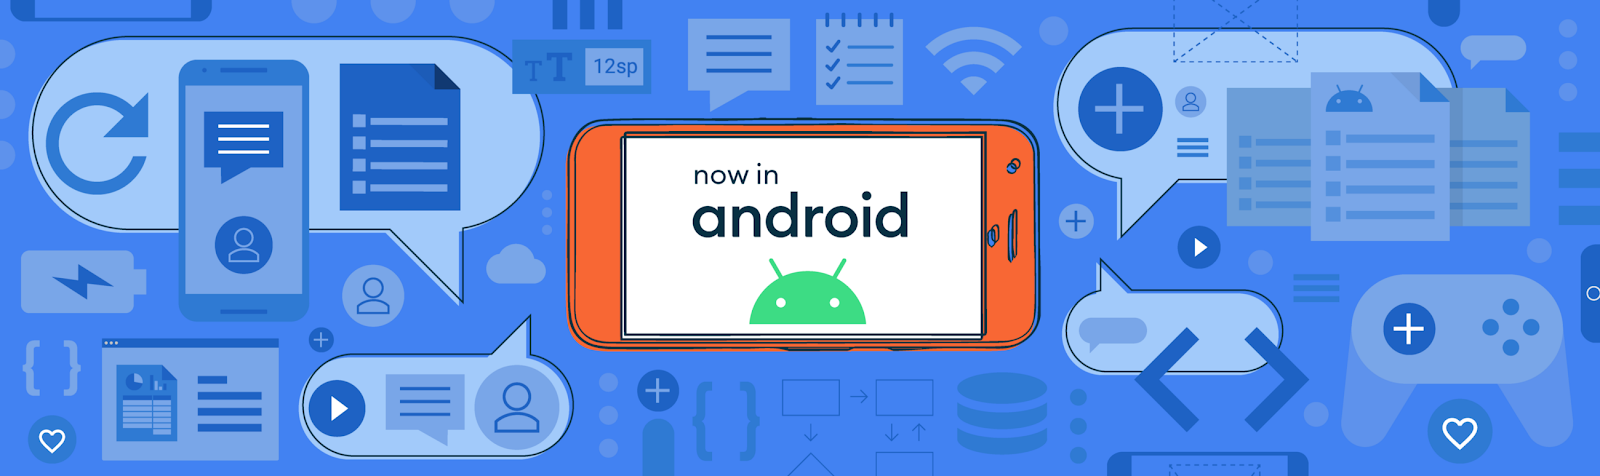 Now in Android text within a phone frame above an Android logo, surrounded by various callouts and UI elements.